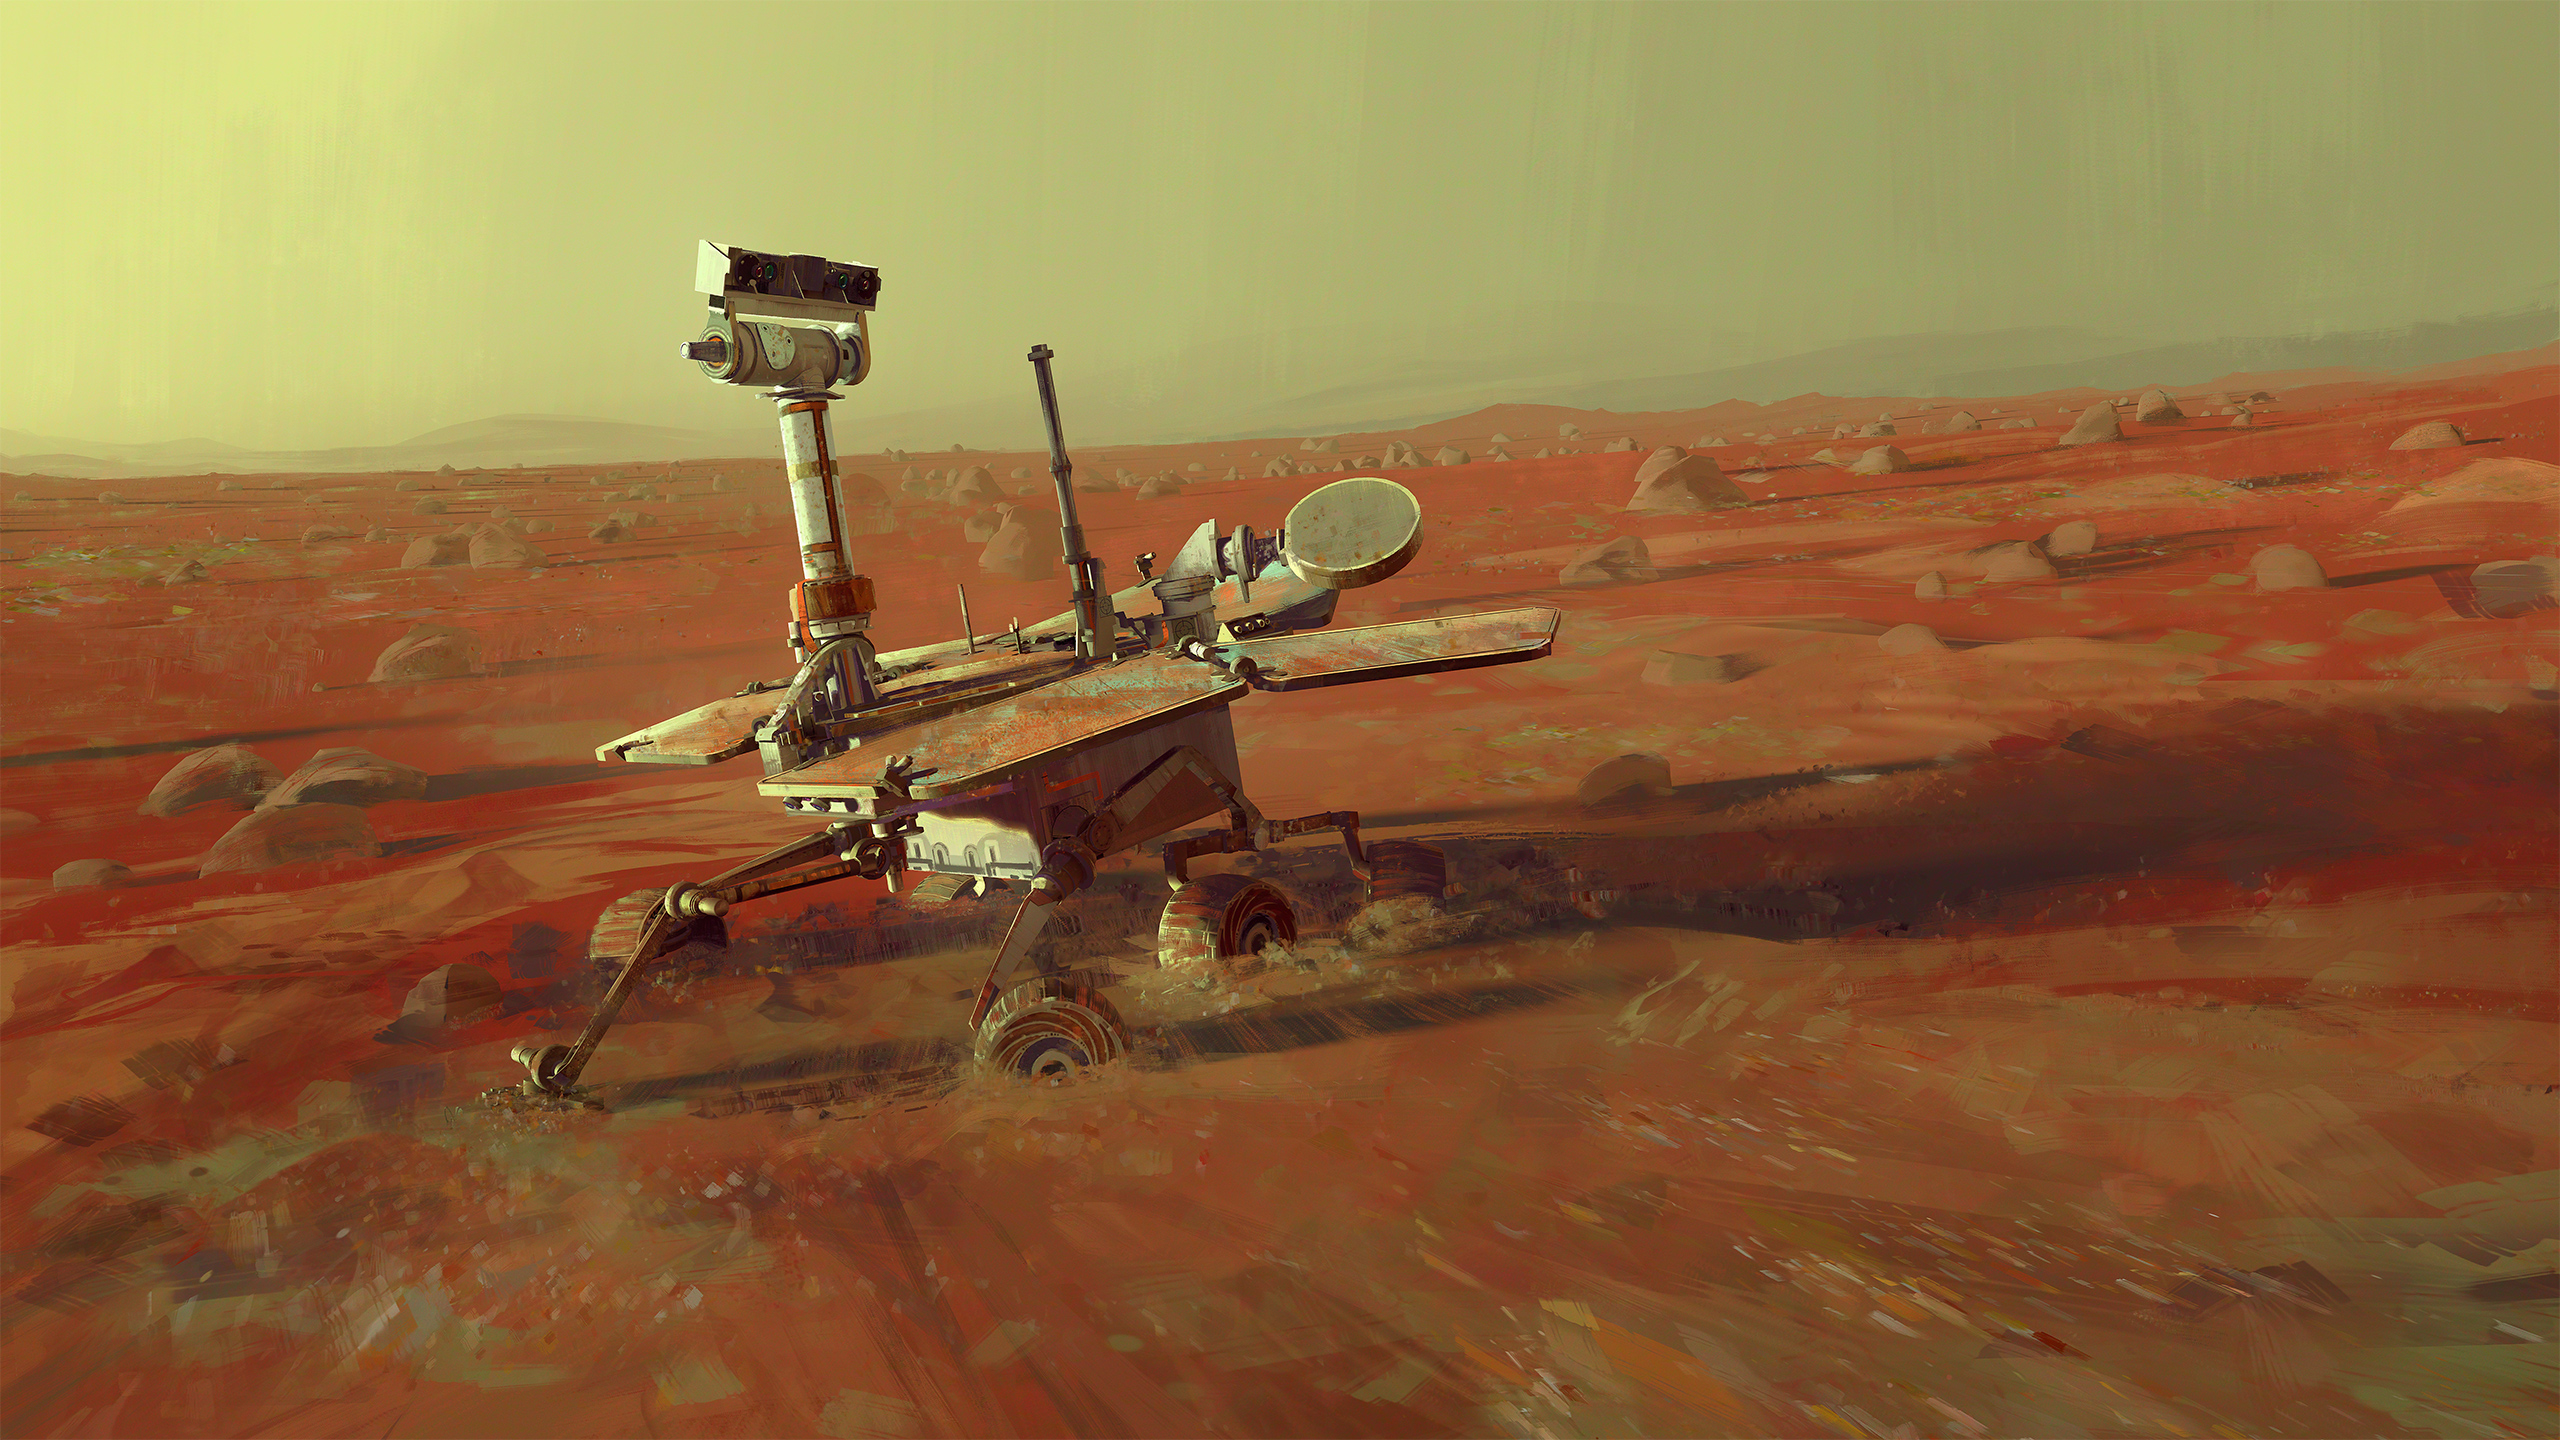 Mars Exploration Rover A - Spirit by MacRebisz